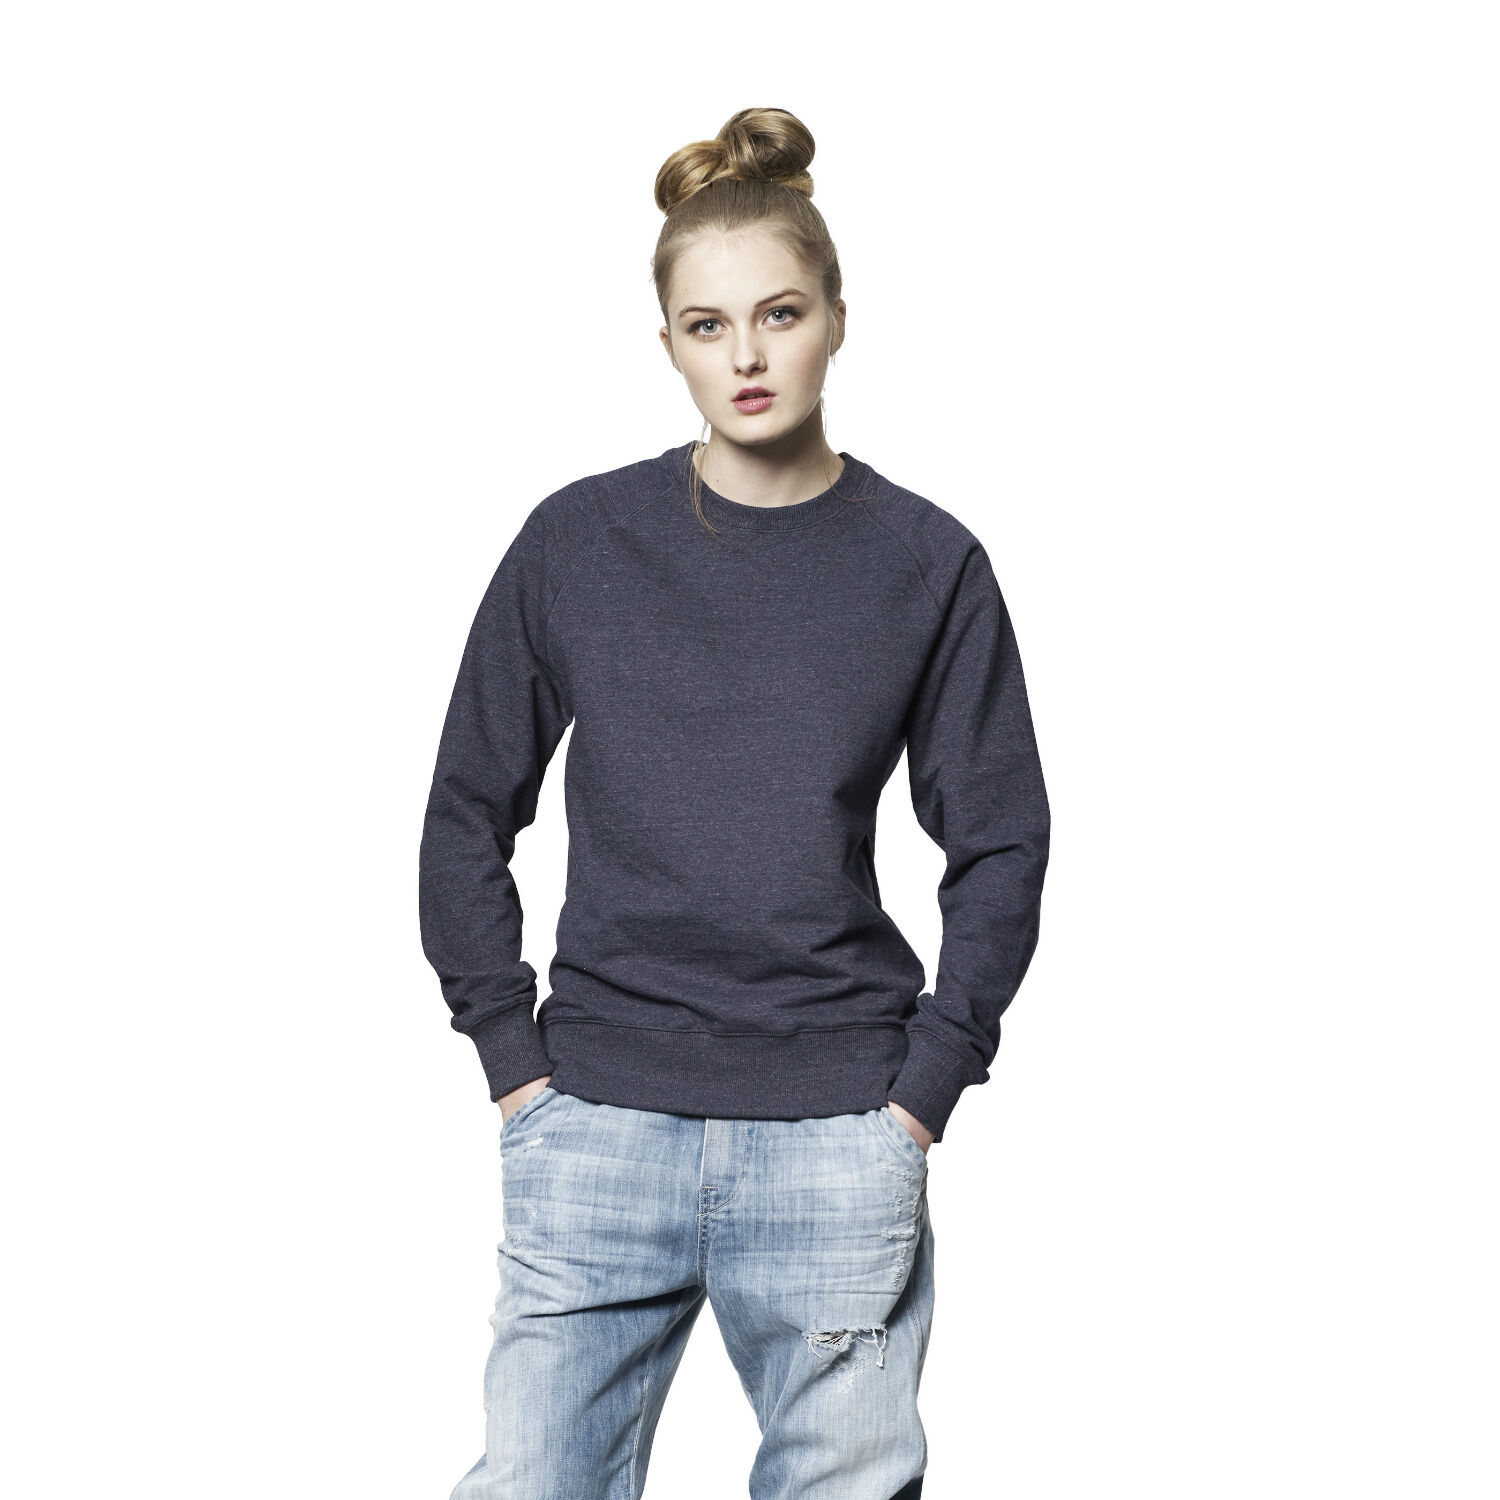 Unisex Salvage Organic Sweatshirt (Female)